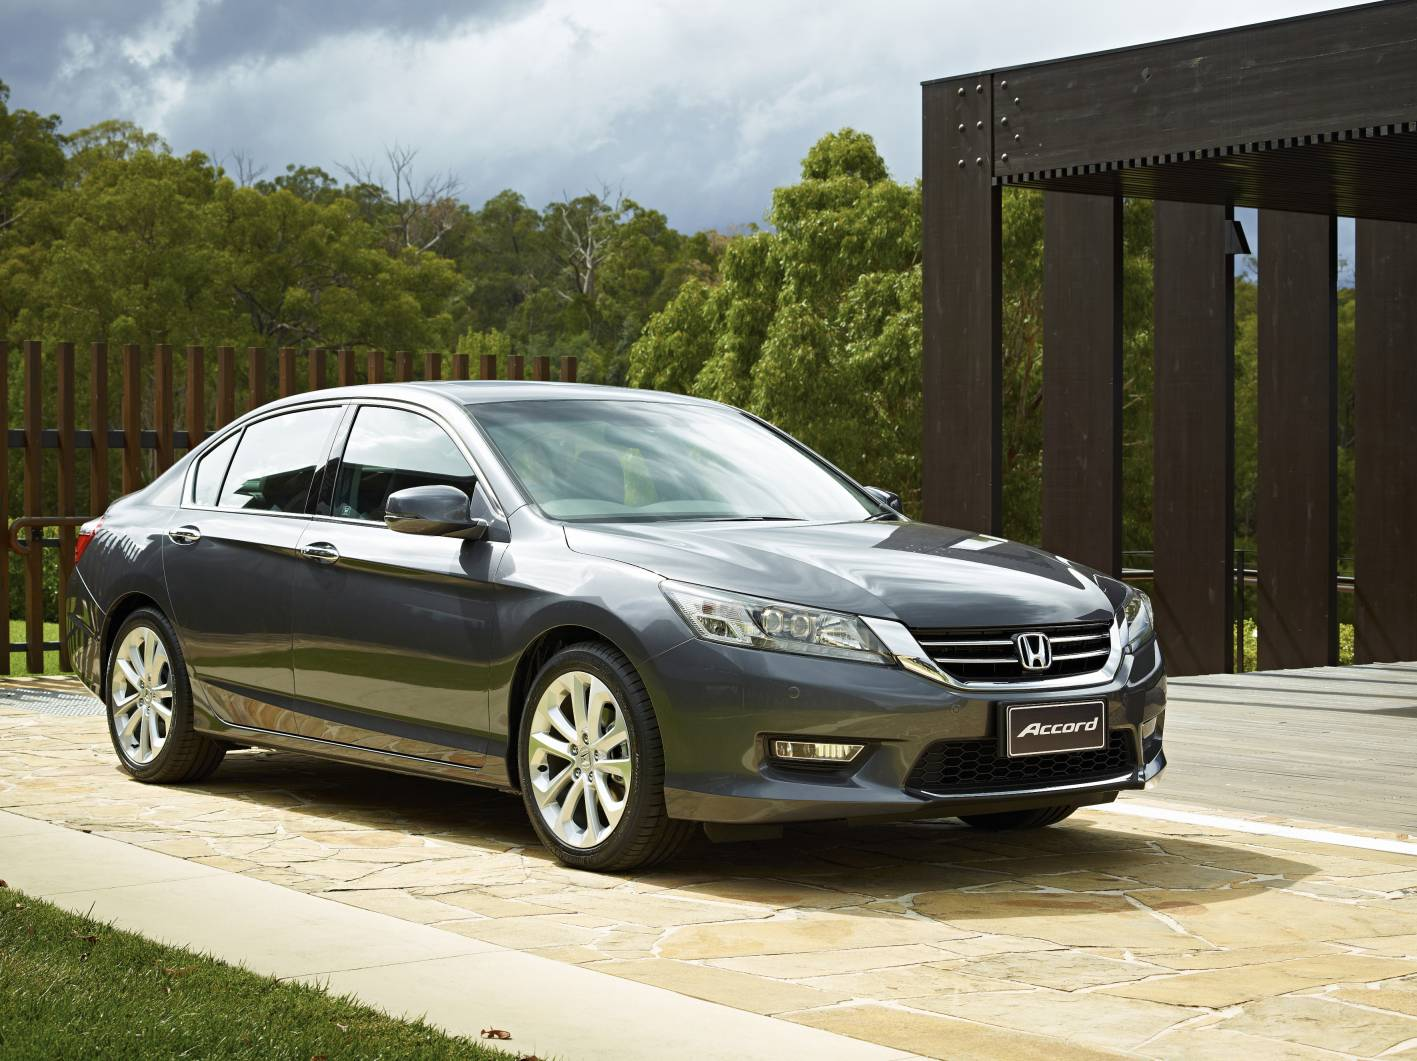 Honda accord review 2013 honda accord for Honda accord used 2013